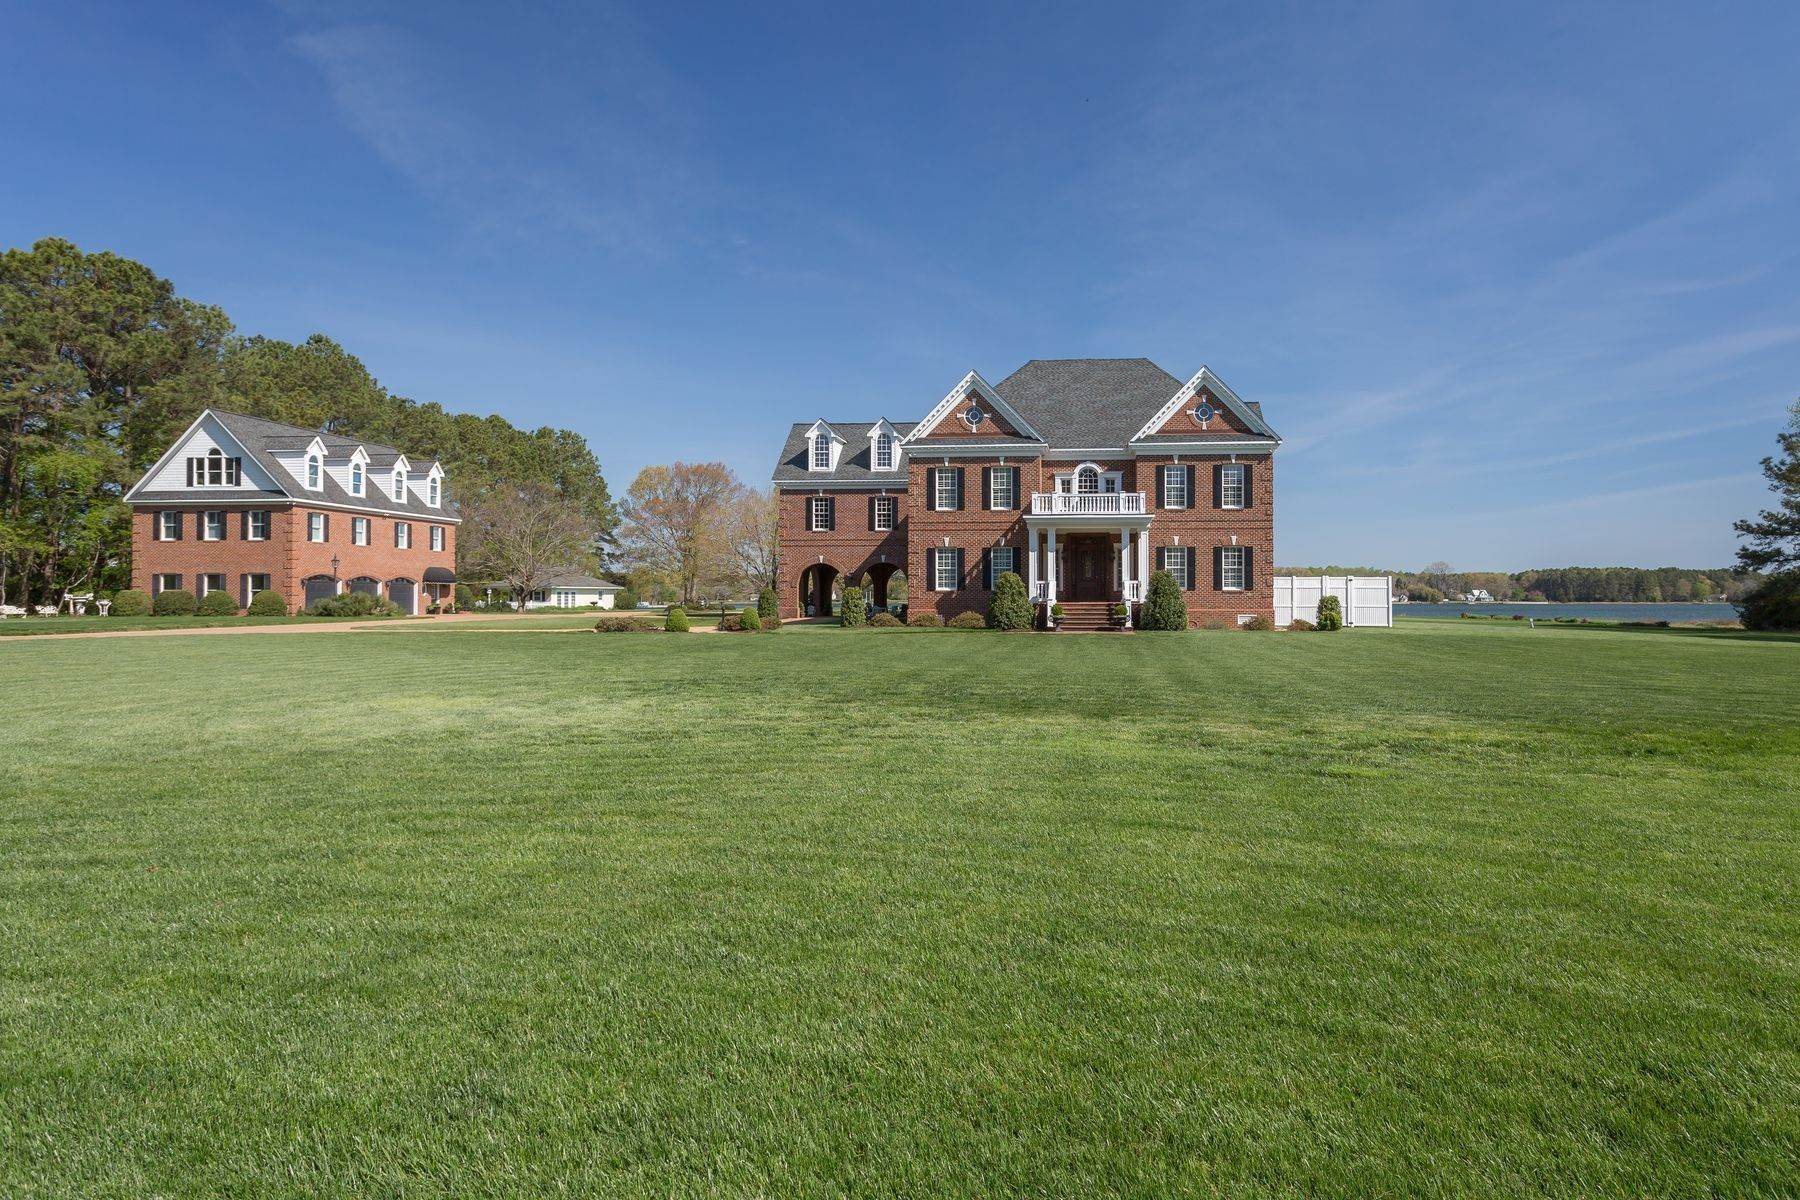 5. Single Family Homes for Sale at Cranefield 8473 Bailey's Wharf Rd Gloucester, Virginia 23061 United States